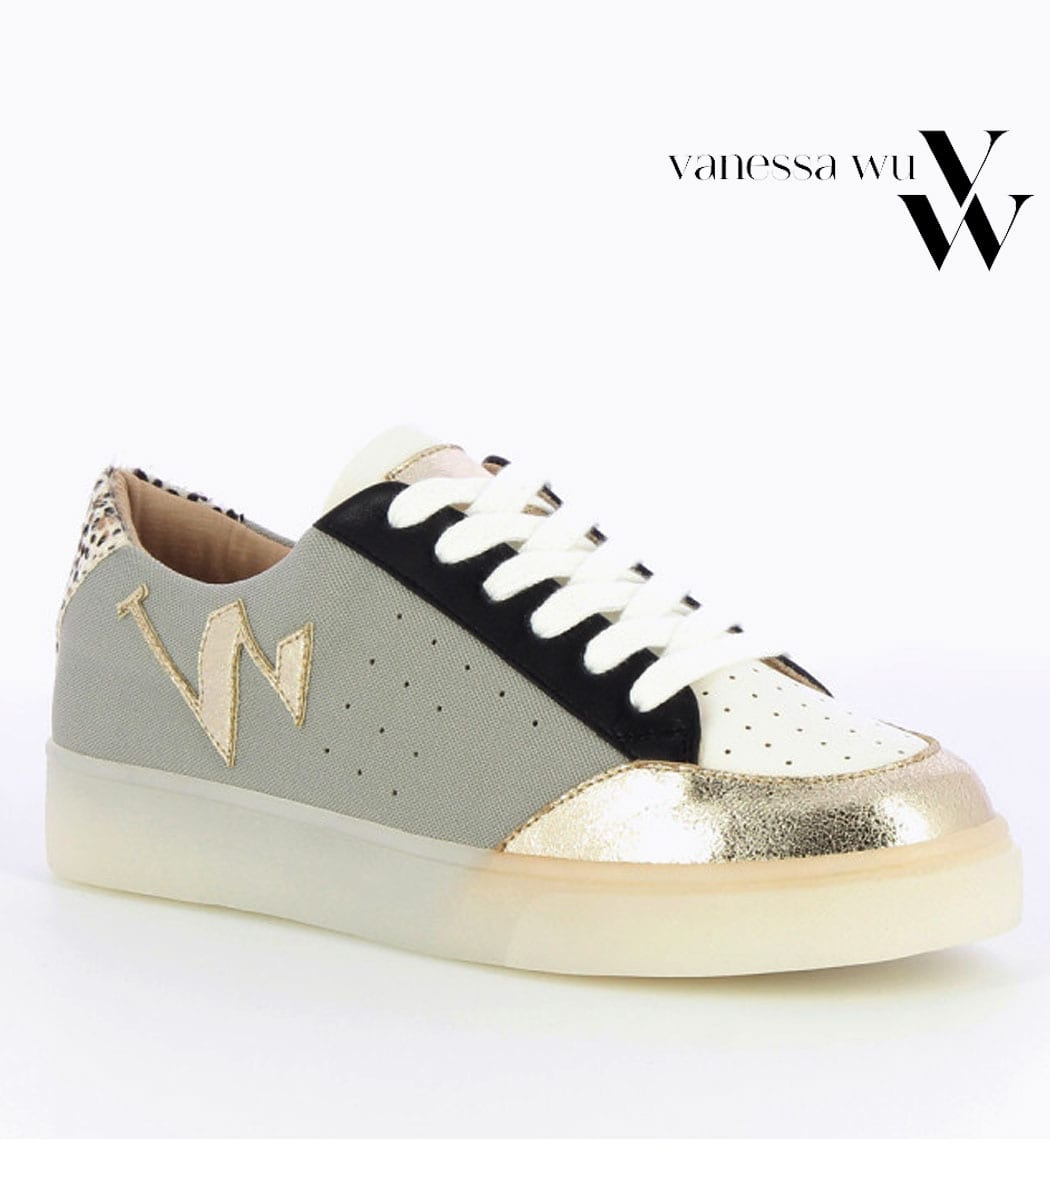 Vanessa Wu lace-up patch sneaker